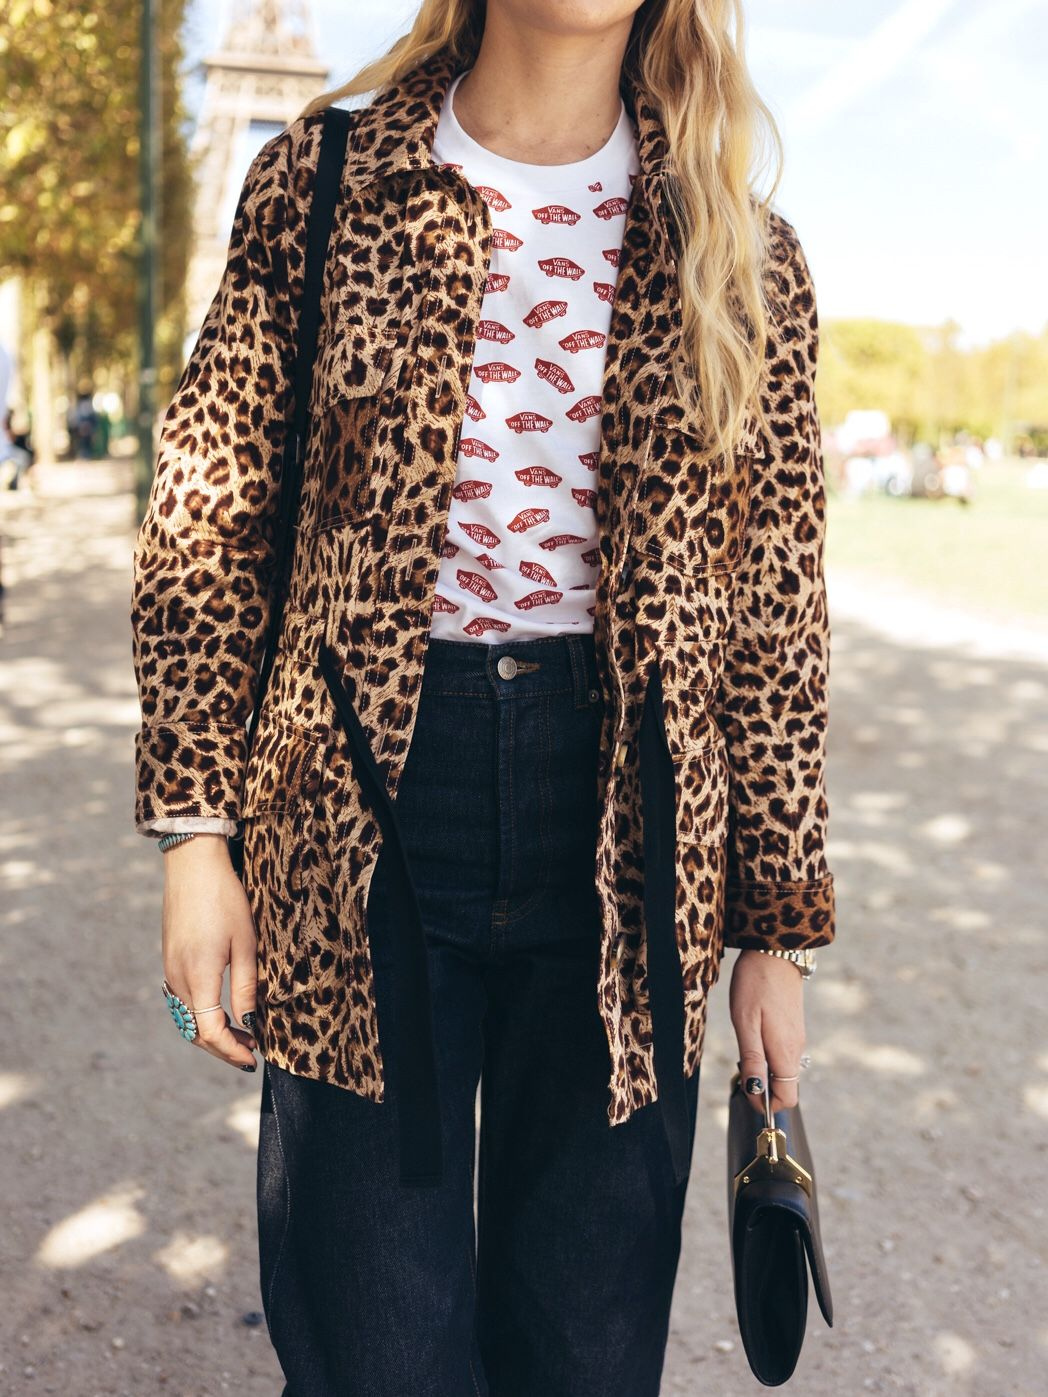 357c943592b9 Wearing: & Other Stories Leopard Jacket, Vans logo graphic tee, Dries Van  Noten jeans, m2malletier clutch. Shop the look, new on the blog.